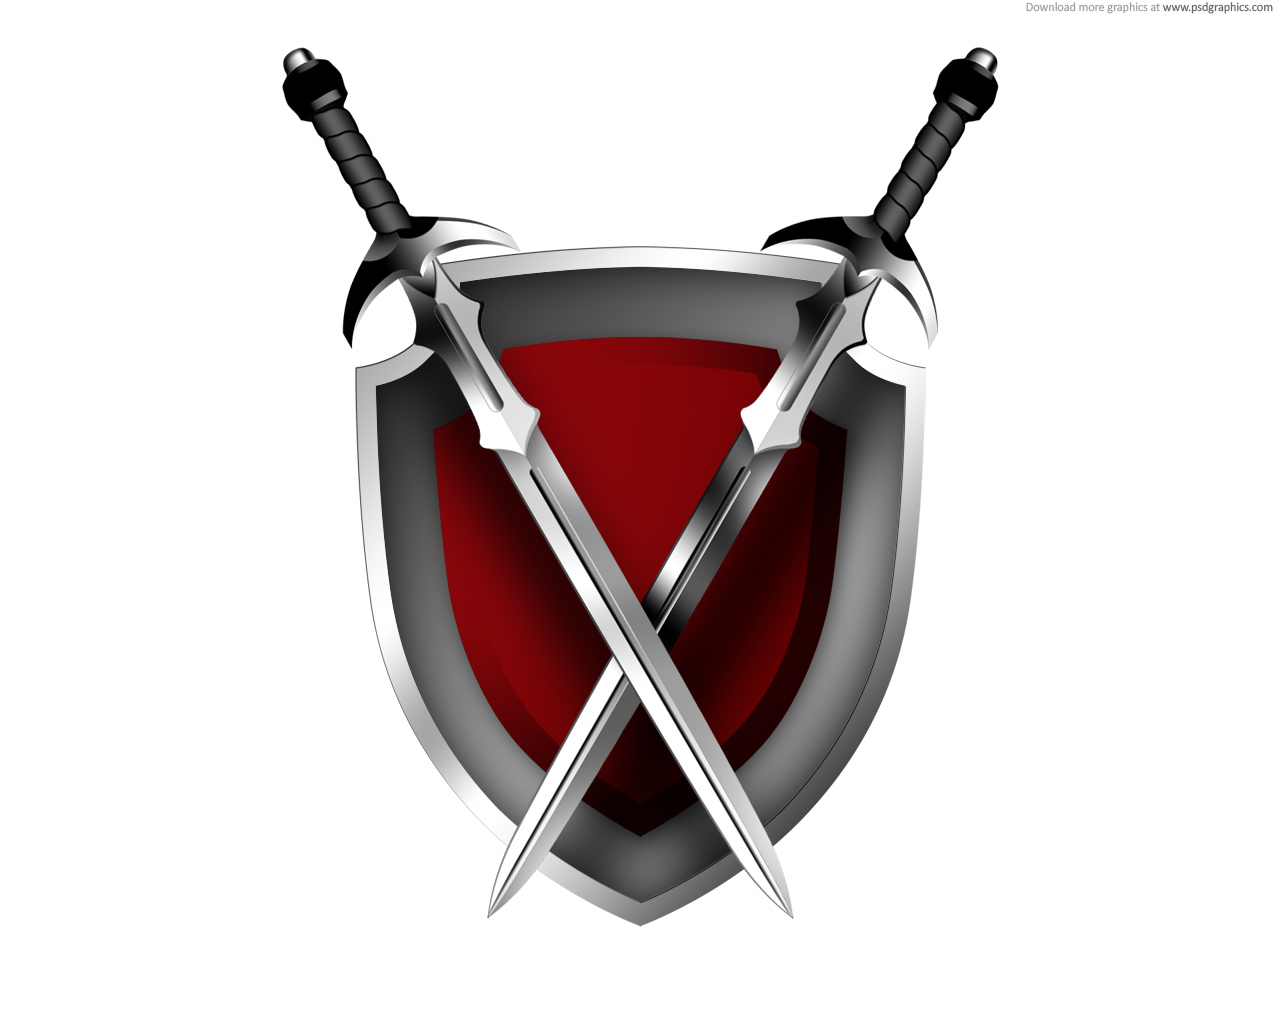 Sistema de Raças inimigas Swords-shield-icon